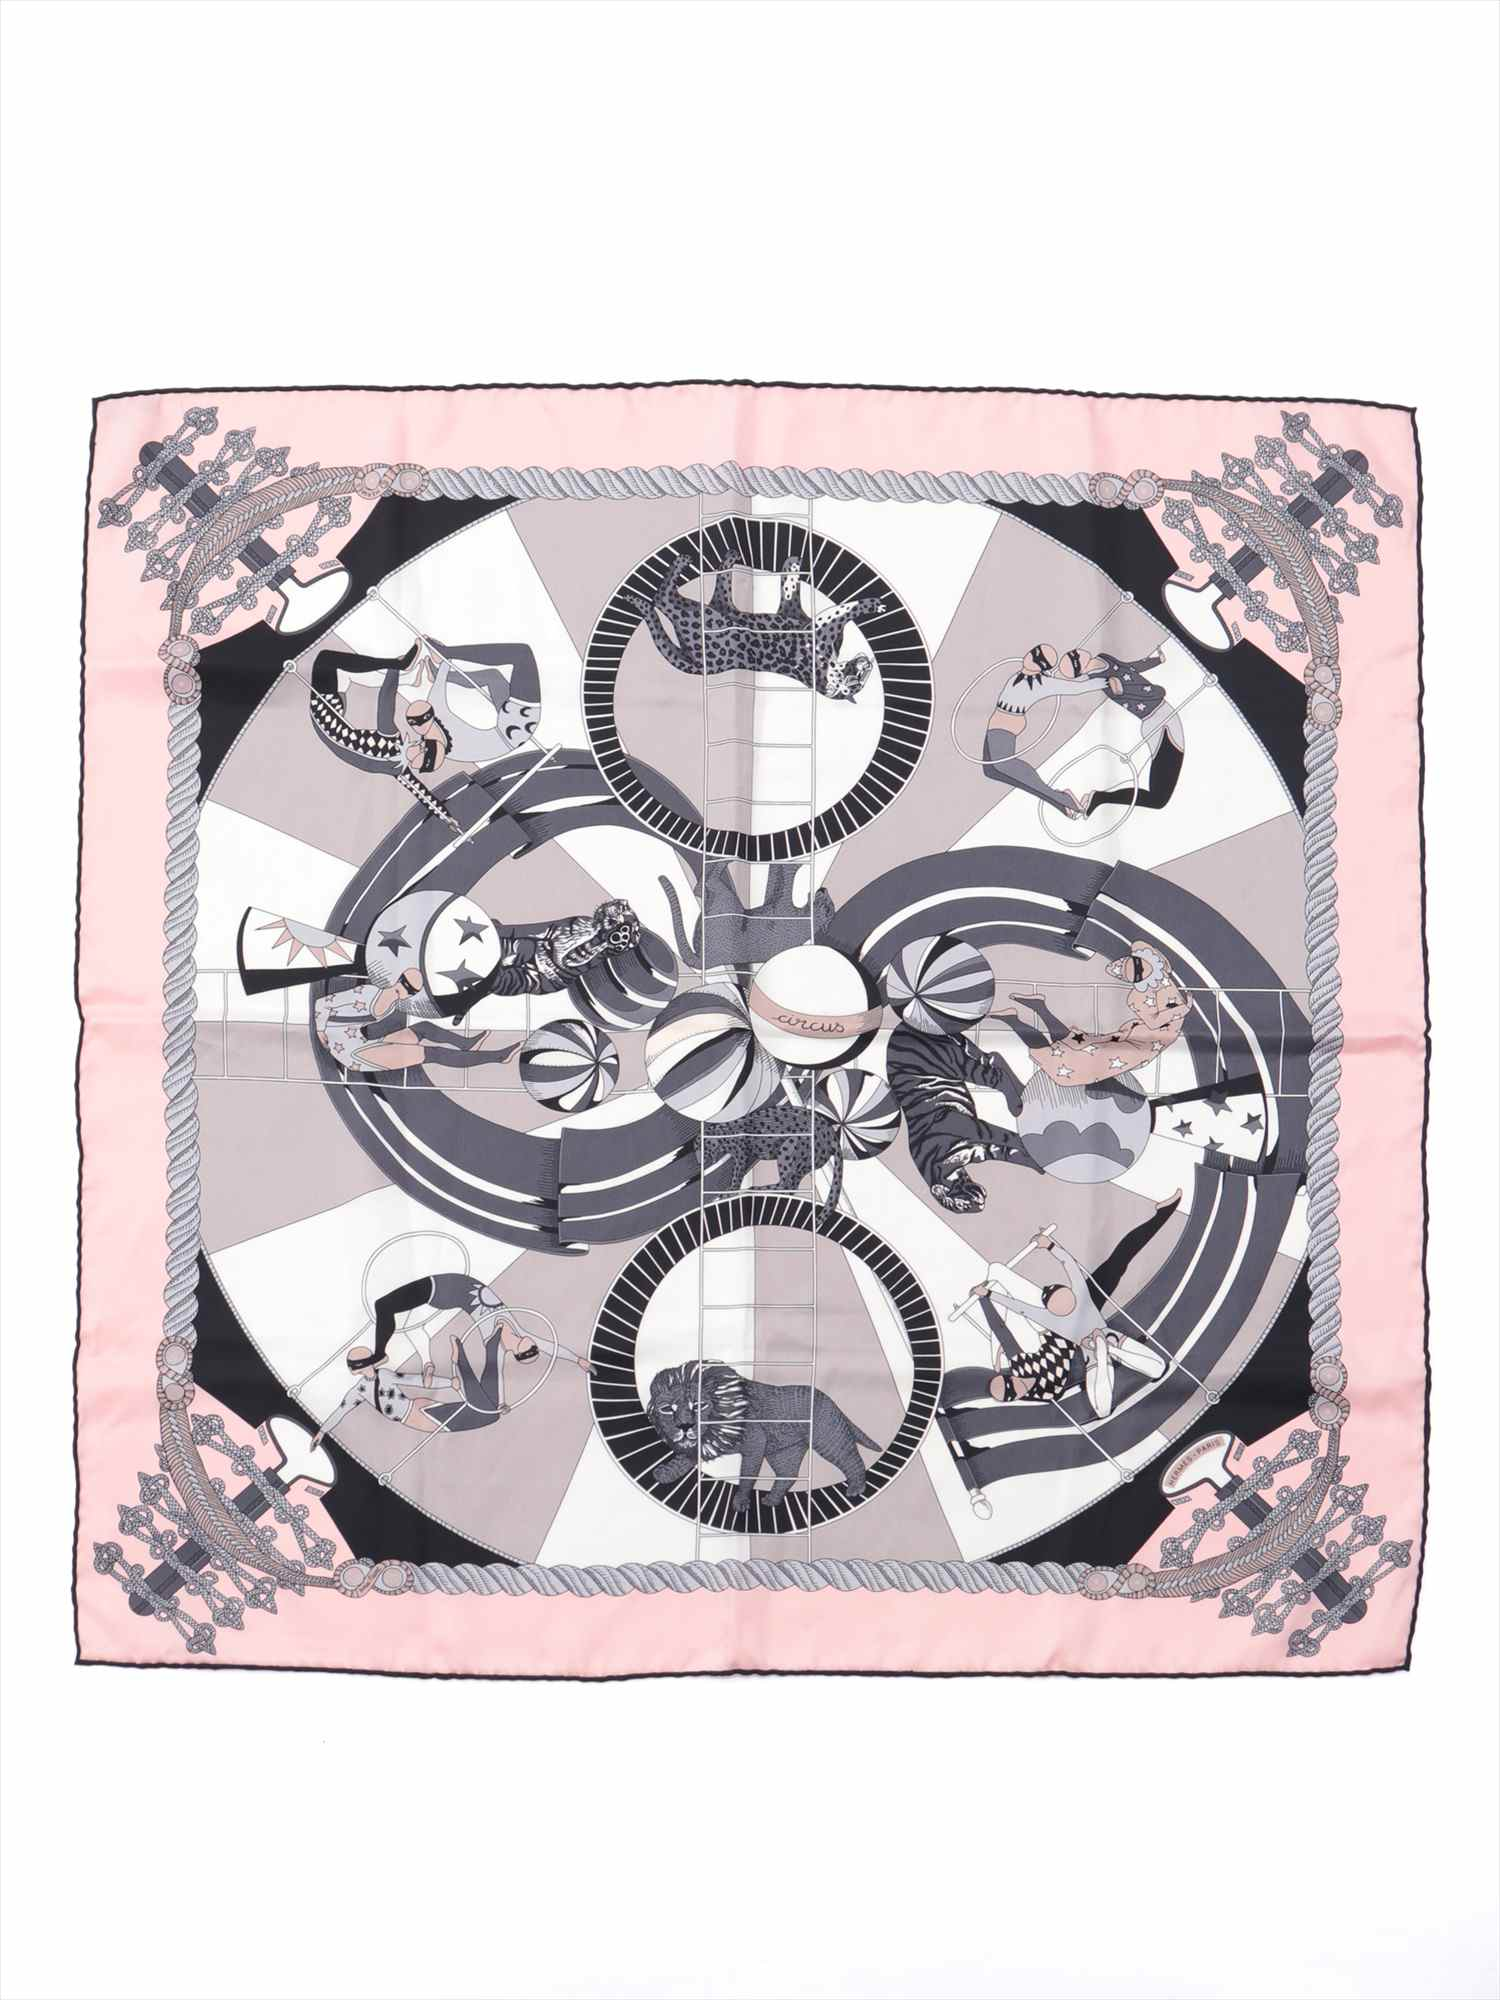 [Used goods] Hermes Carre 70 scarf silk pink CIRCUS (circus)